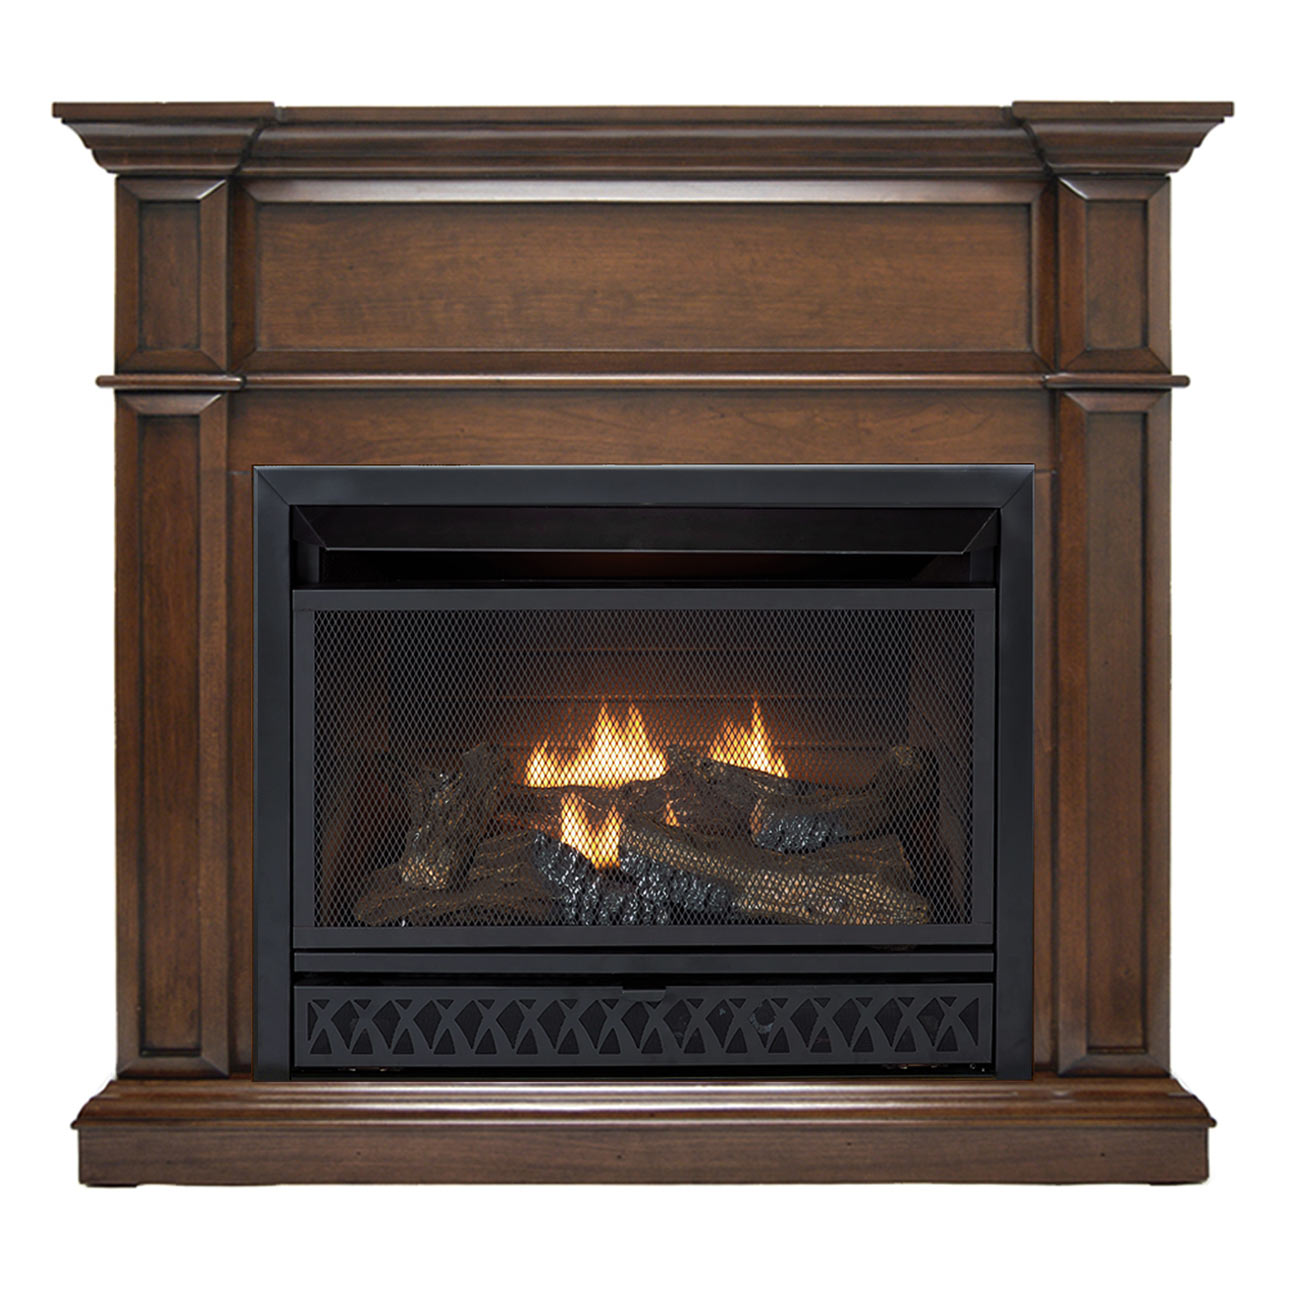 Ventless Fireplace: HearthSense Ventless Fireplace System With Dual Fuel